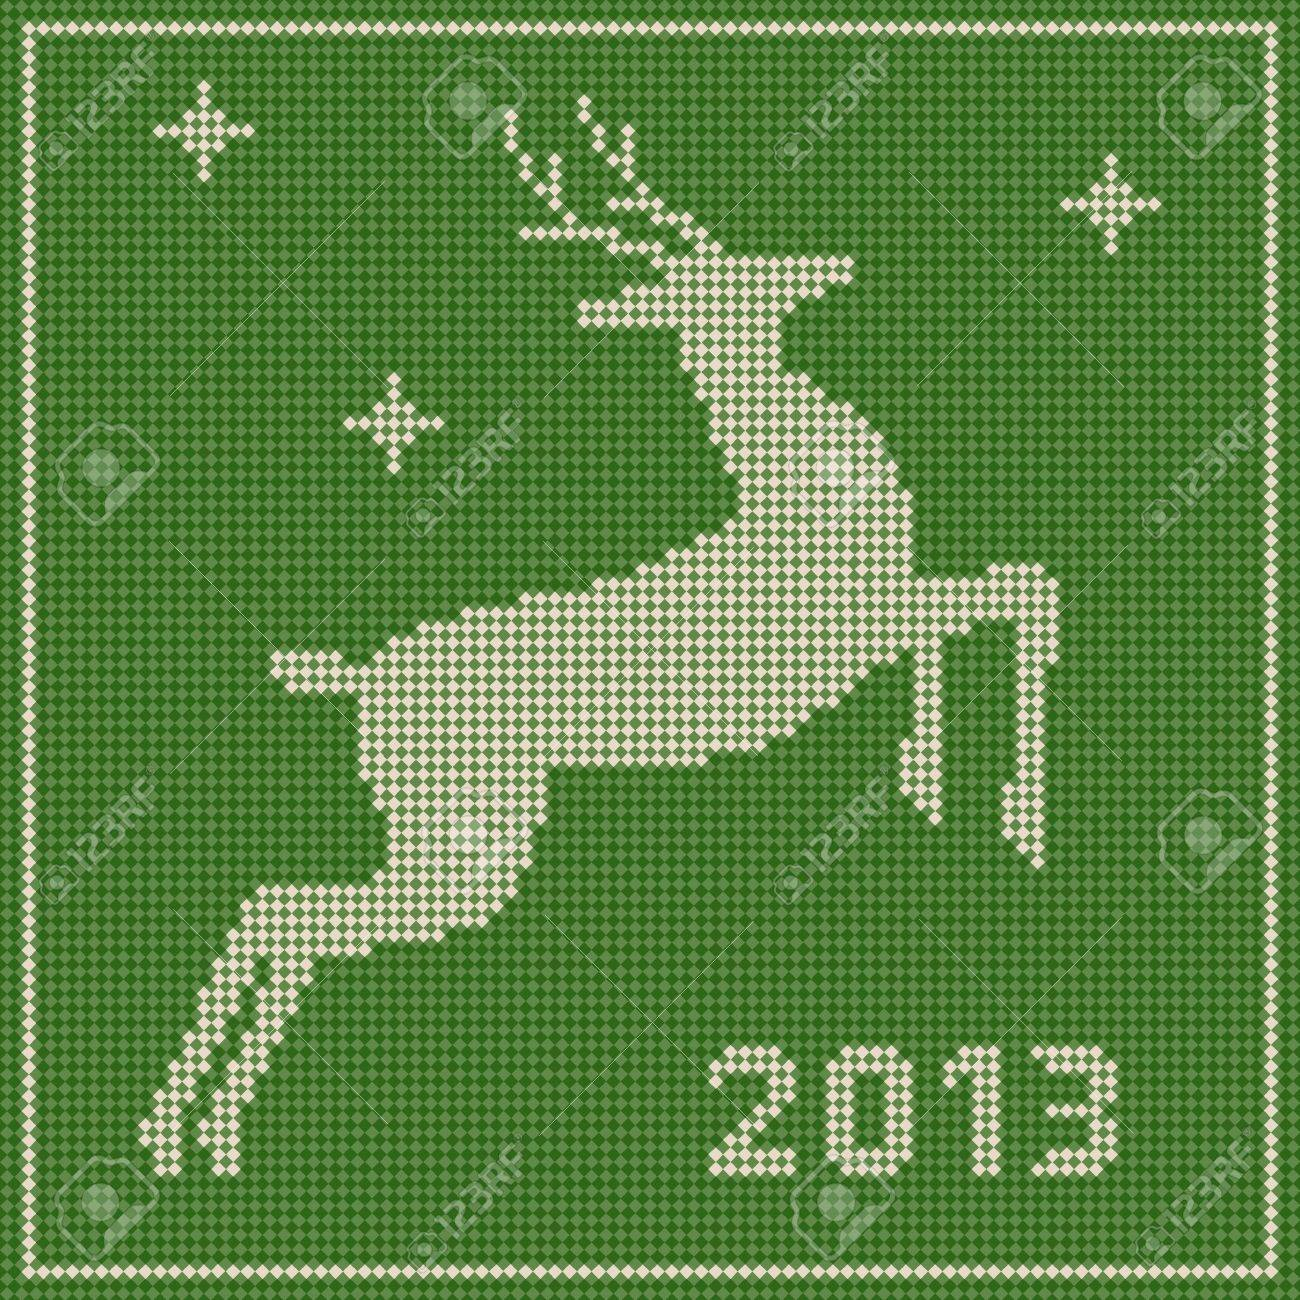 Christmas Embroidery Patterns Free.Traditional Christmas Embroidery Pattern With A Deer